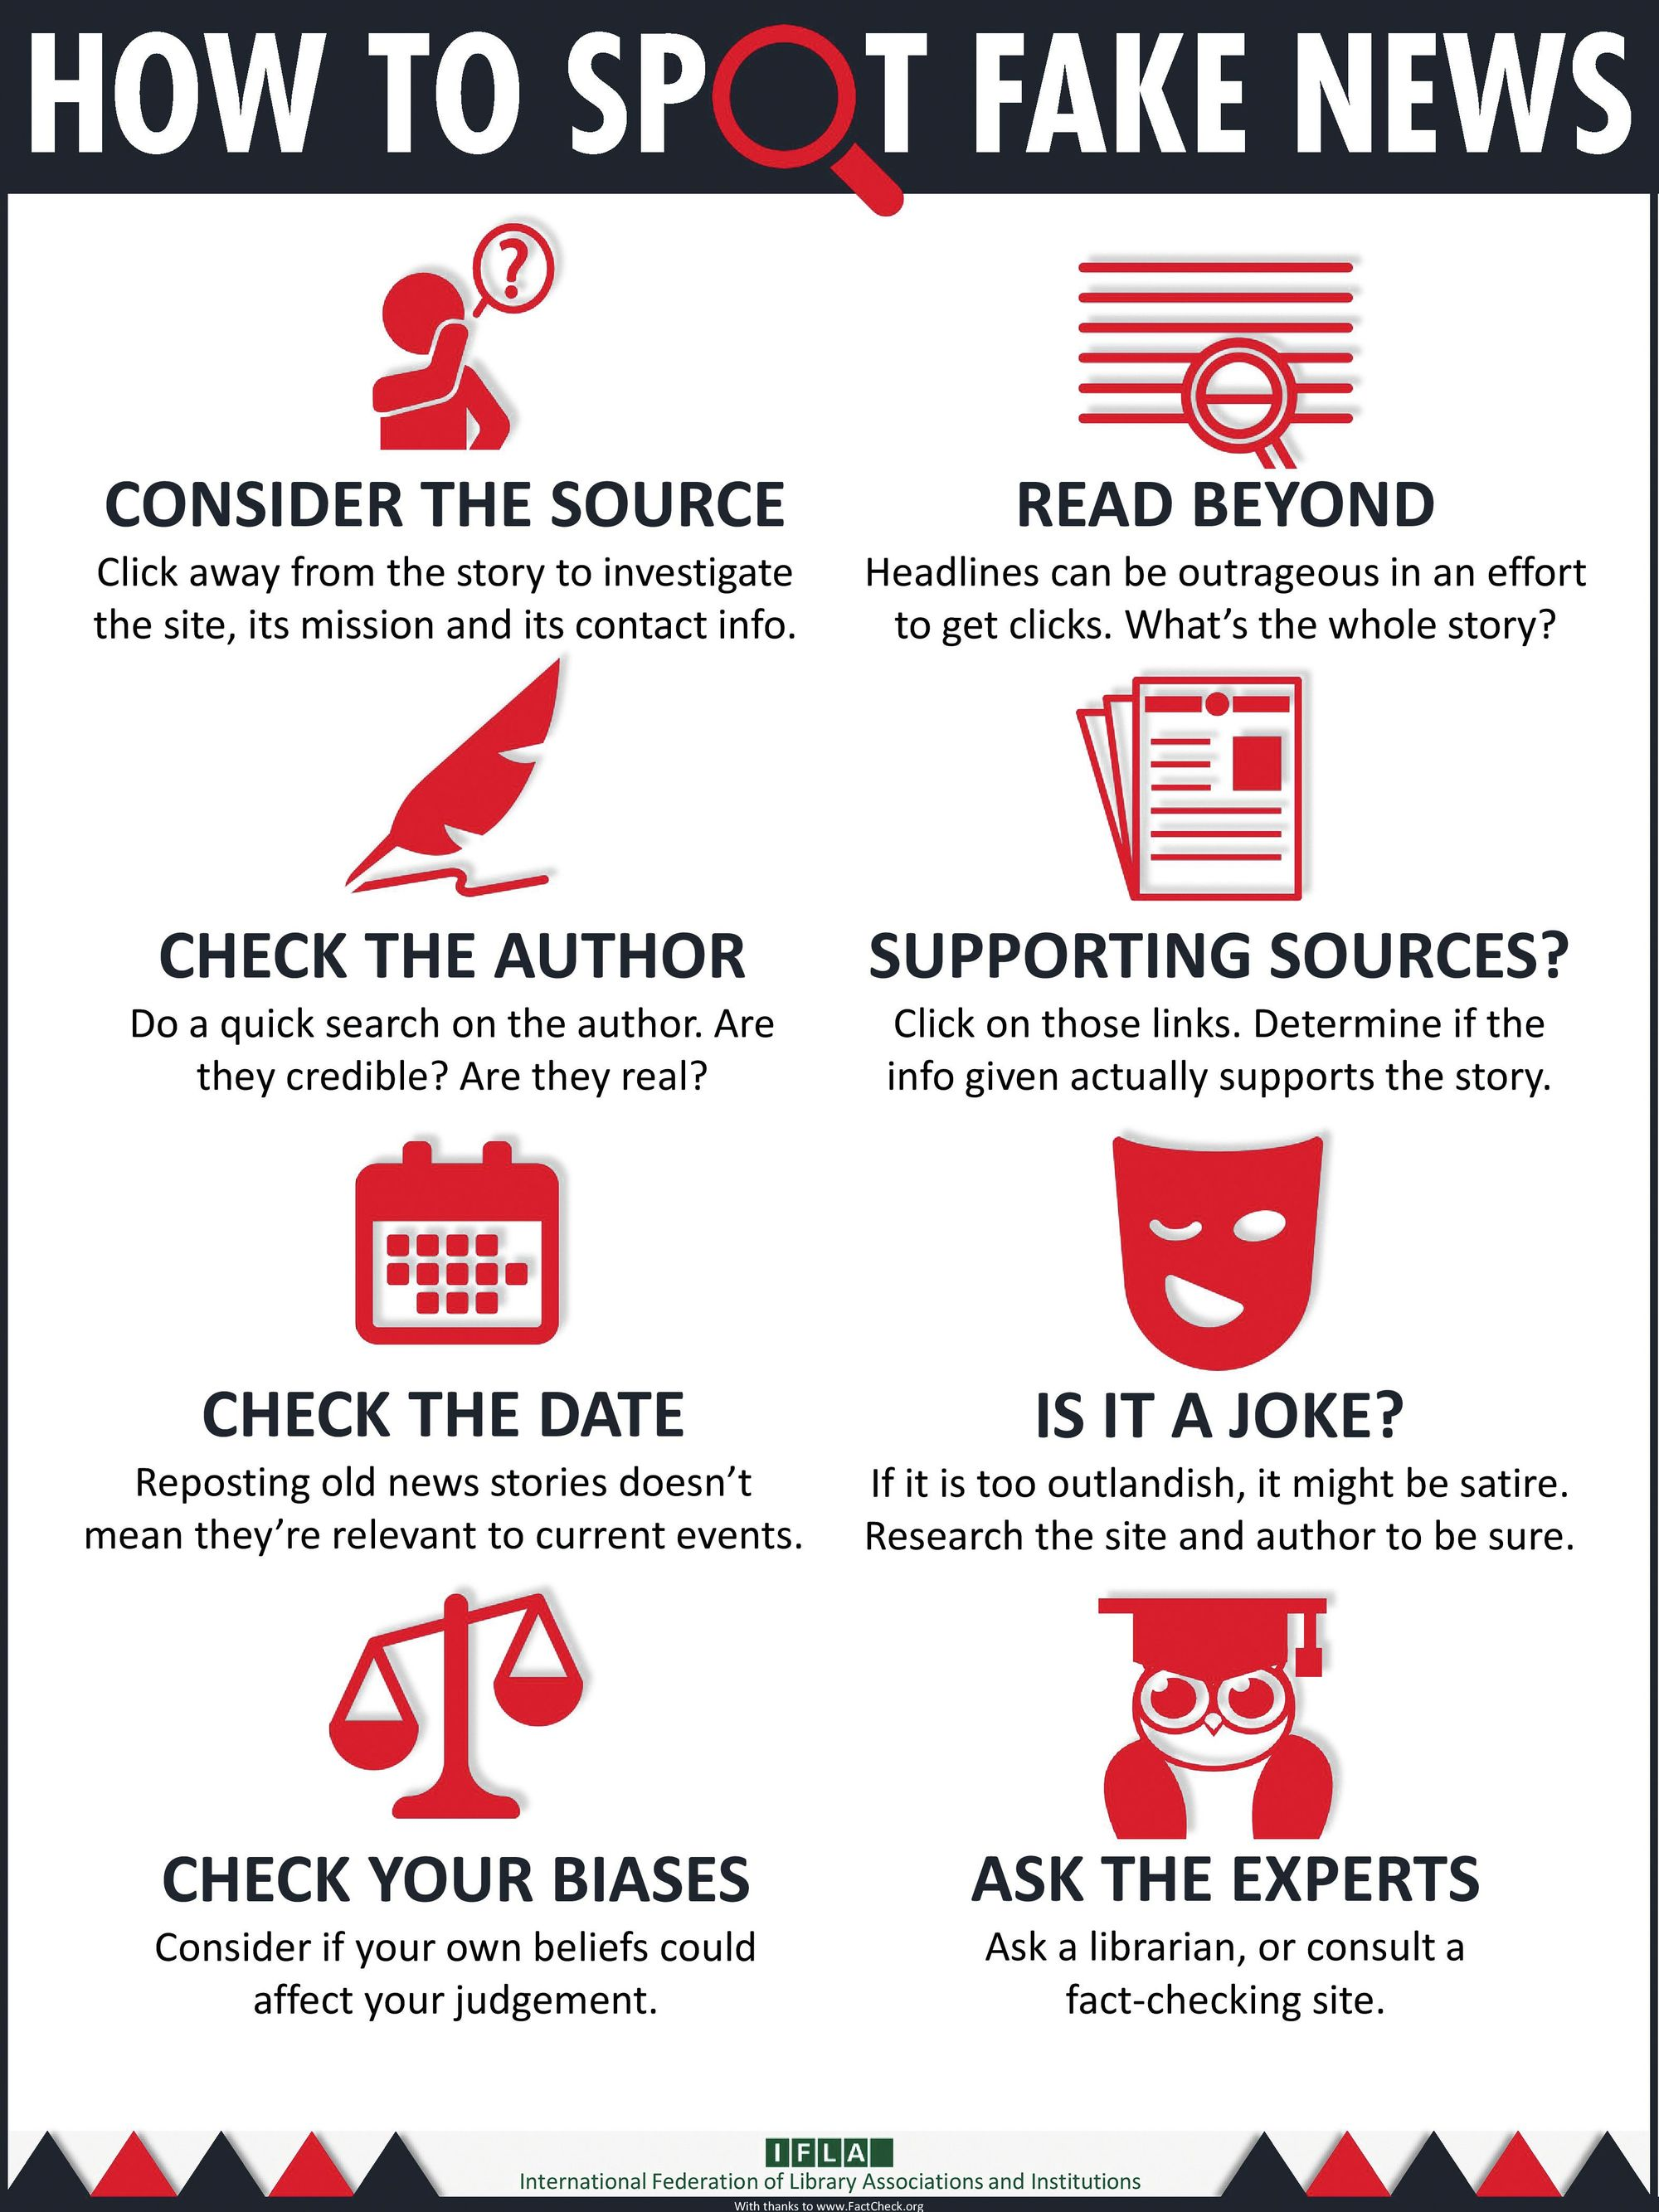 """How to Spot Fake News"", IFLA.org, 2017."